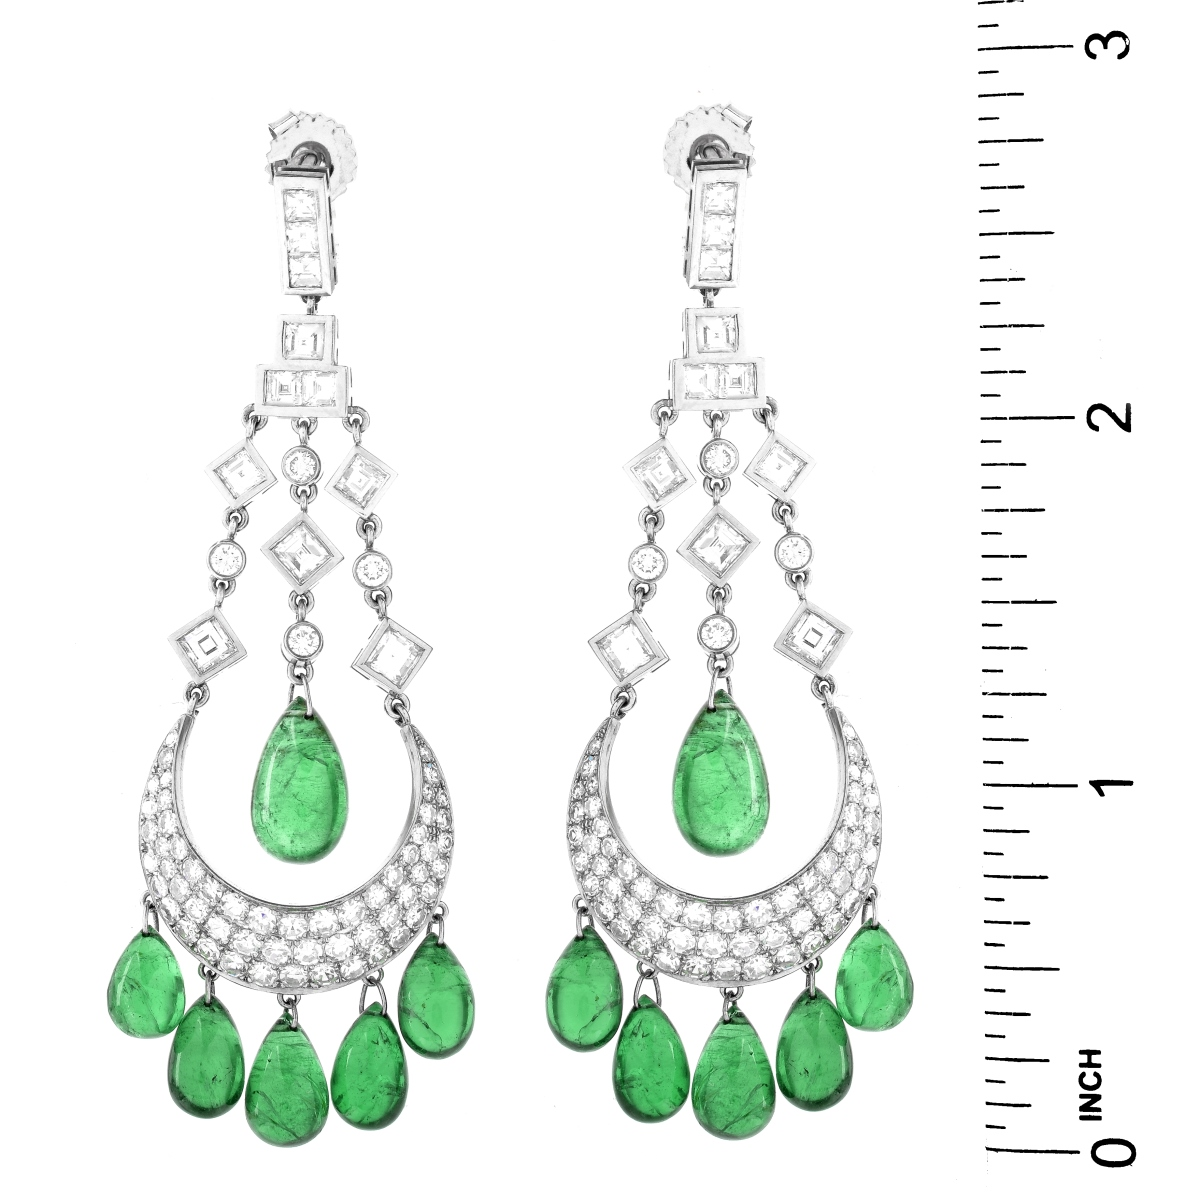 Emerald, Diamond and Platinum Earrings